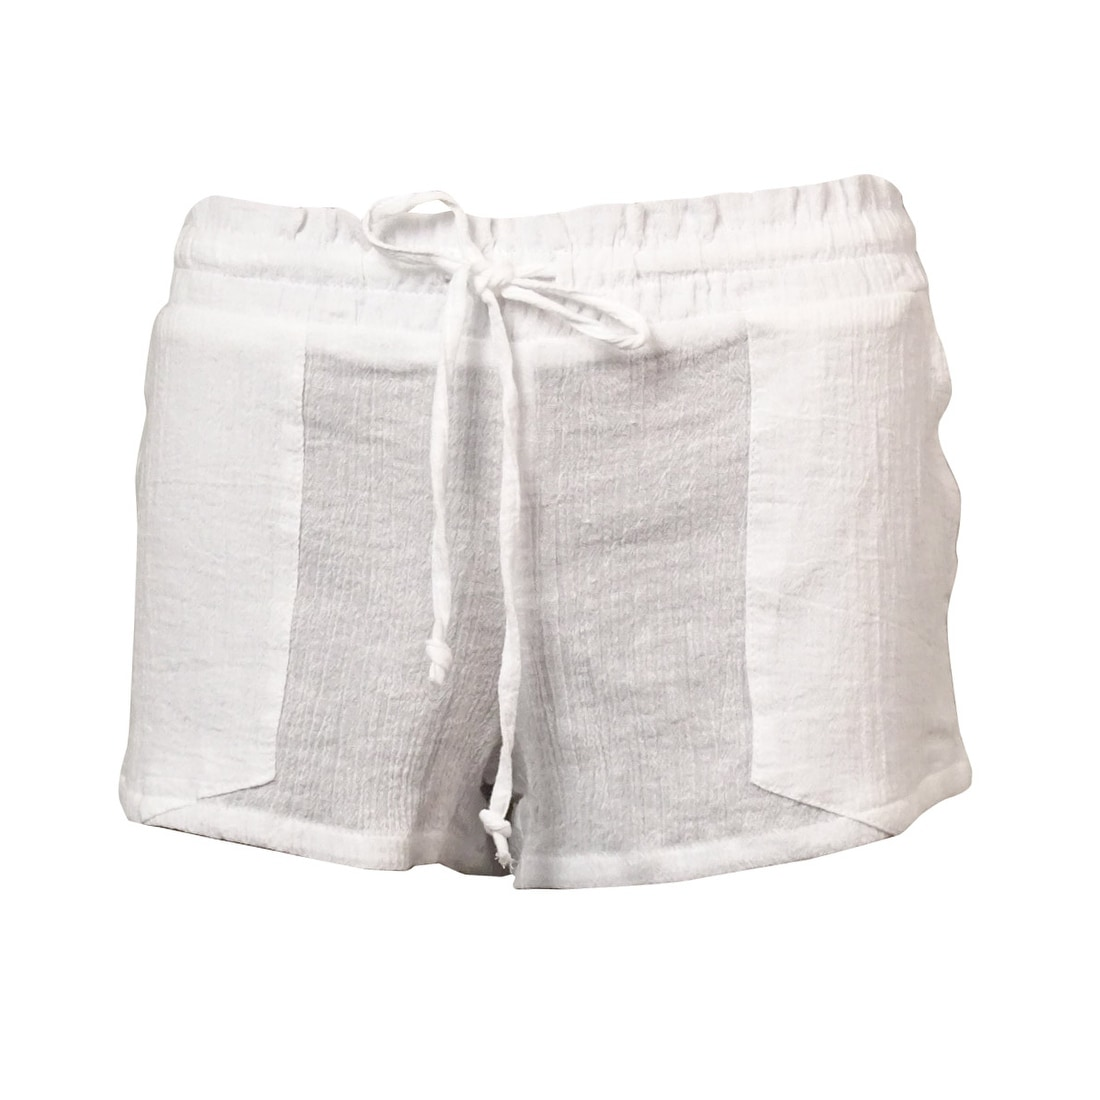 0dd3886ebc Shop Miken Women's Crinkled Cotton Pocket Swim Cover Shorts - On Sale - Free  Shipping On Orders Over $45 - Overstock.com - 14681230